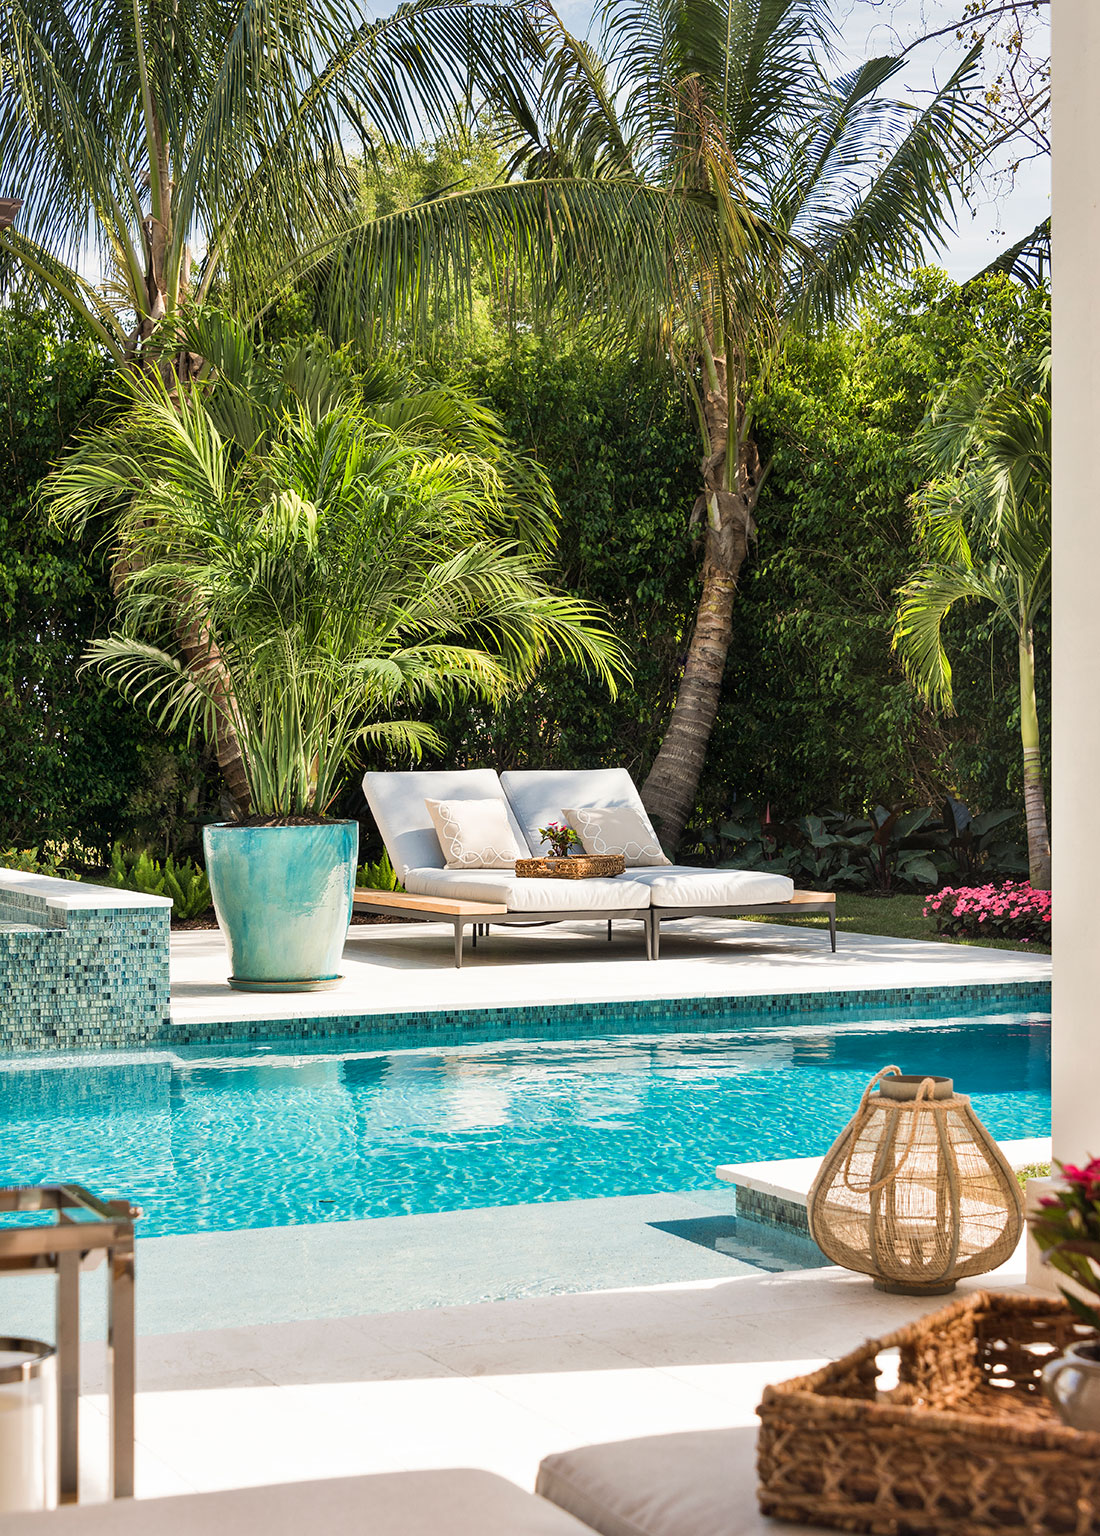 Calusa bay design florida design magazine coastal chic for Pool design magazine